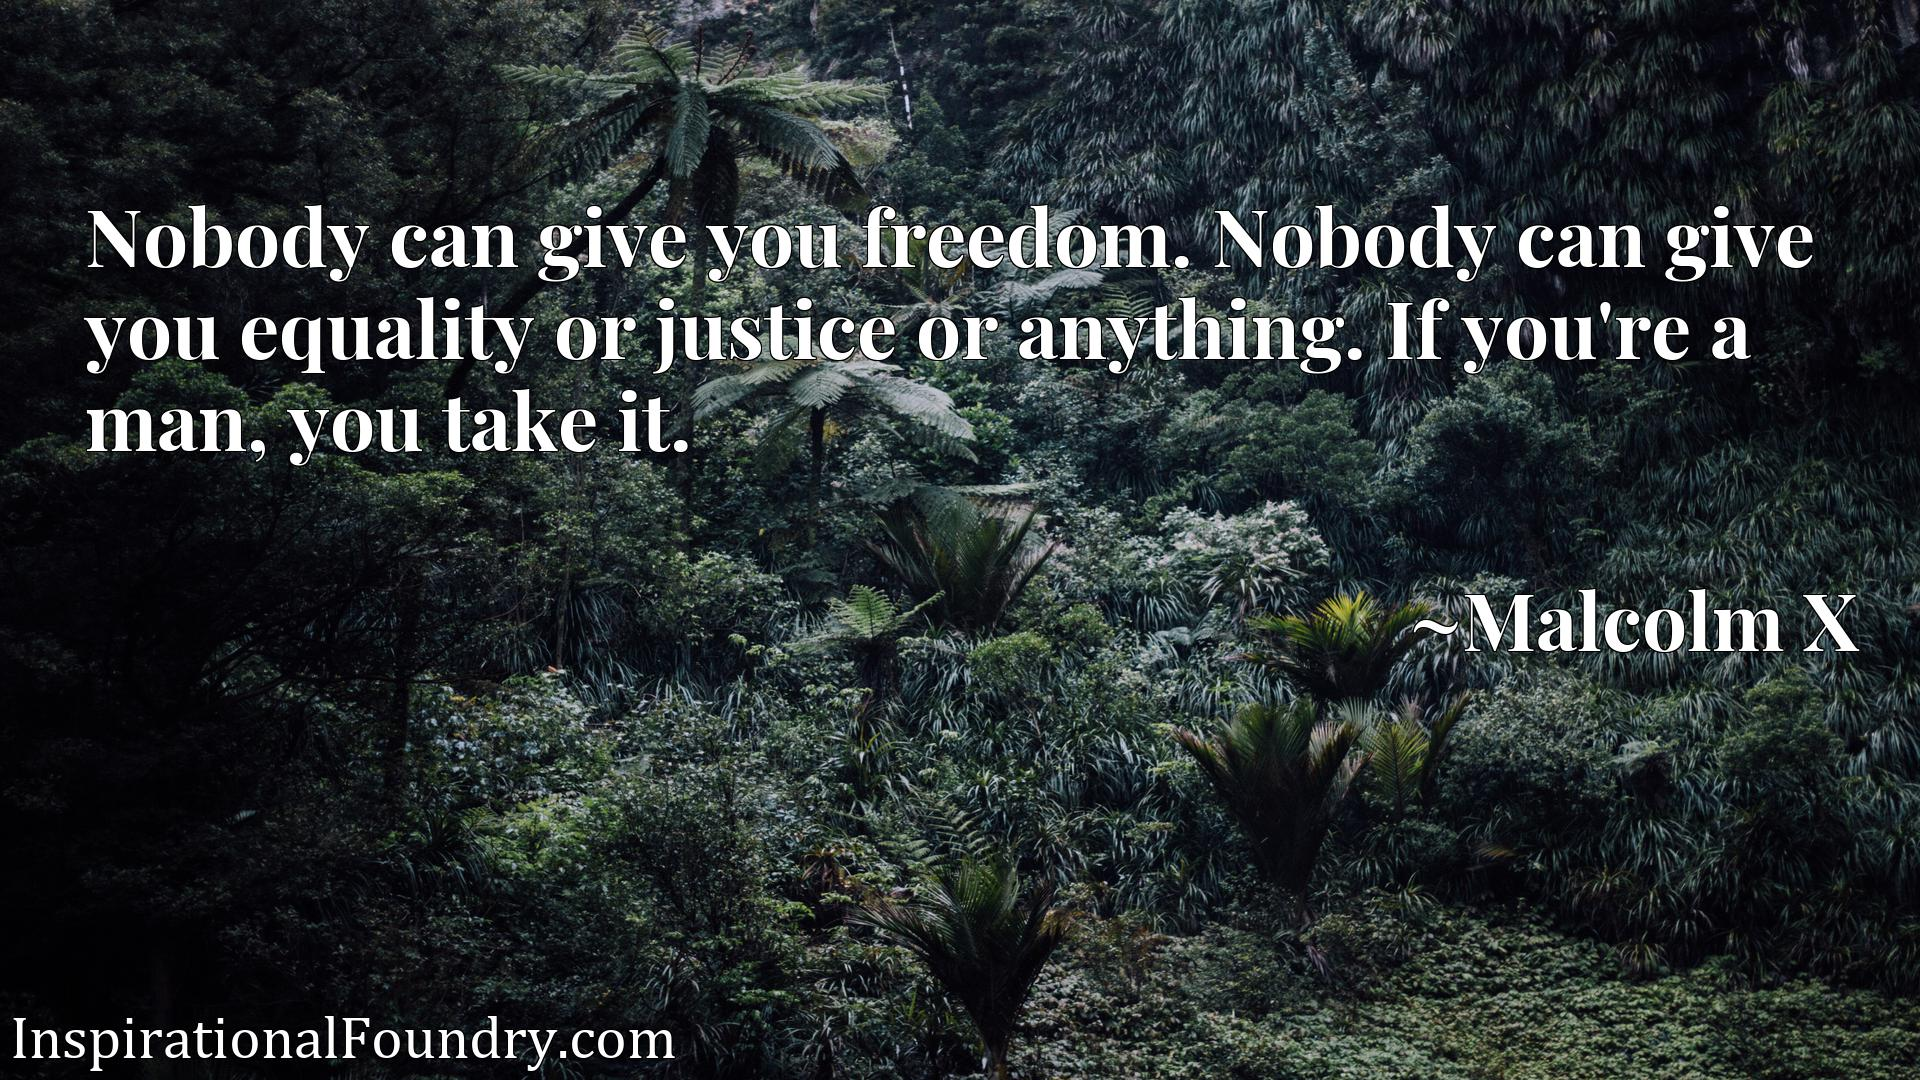 Nobody can give you freedom. Nobody can give you equality or justice or anything. If you're a man, you take it.